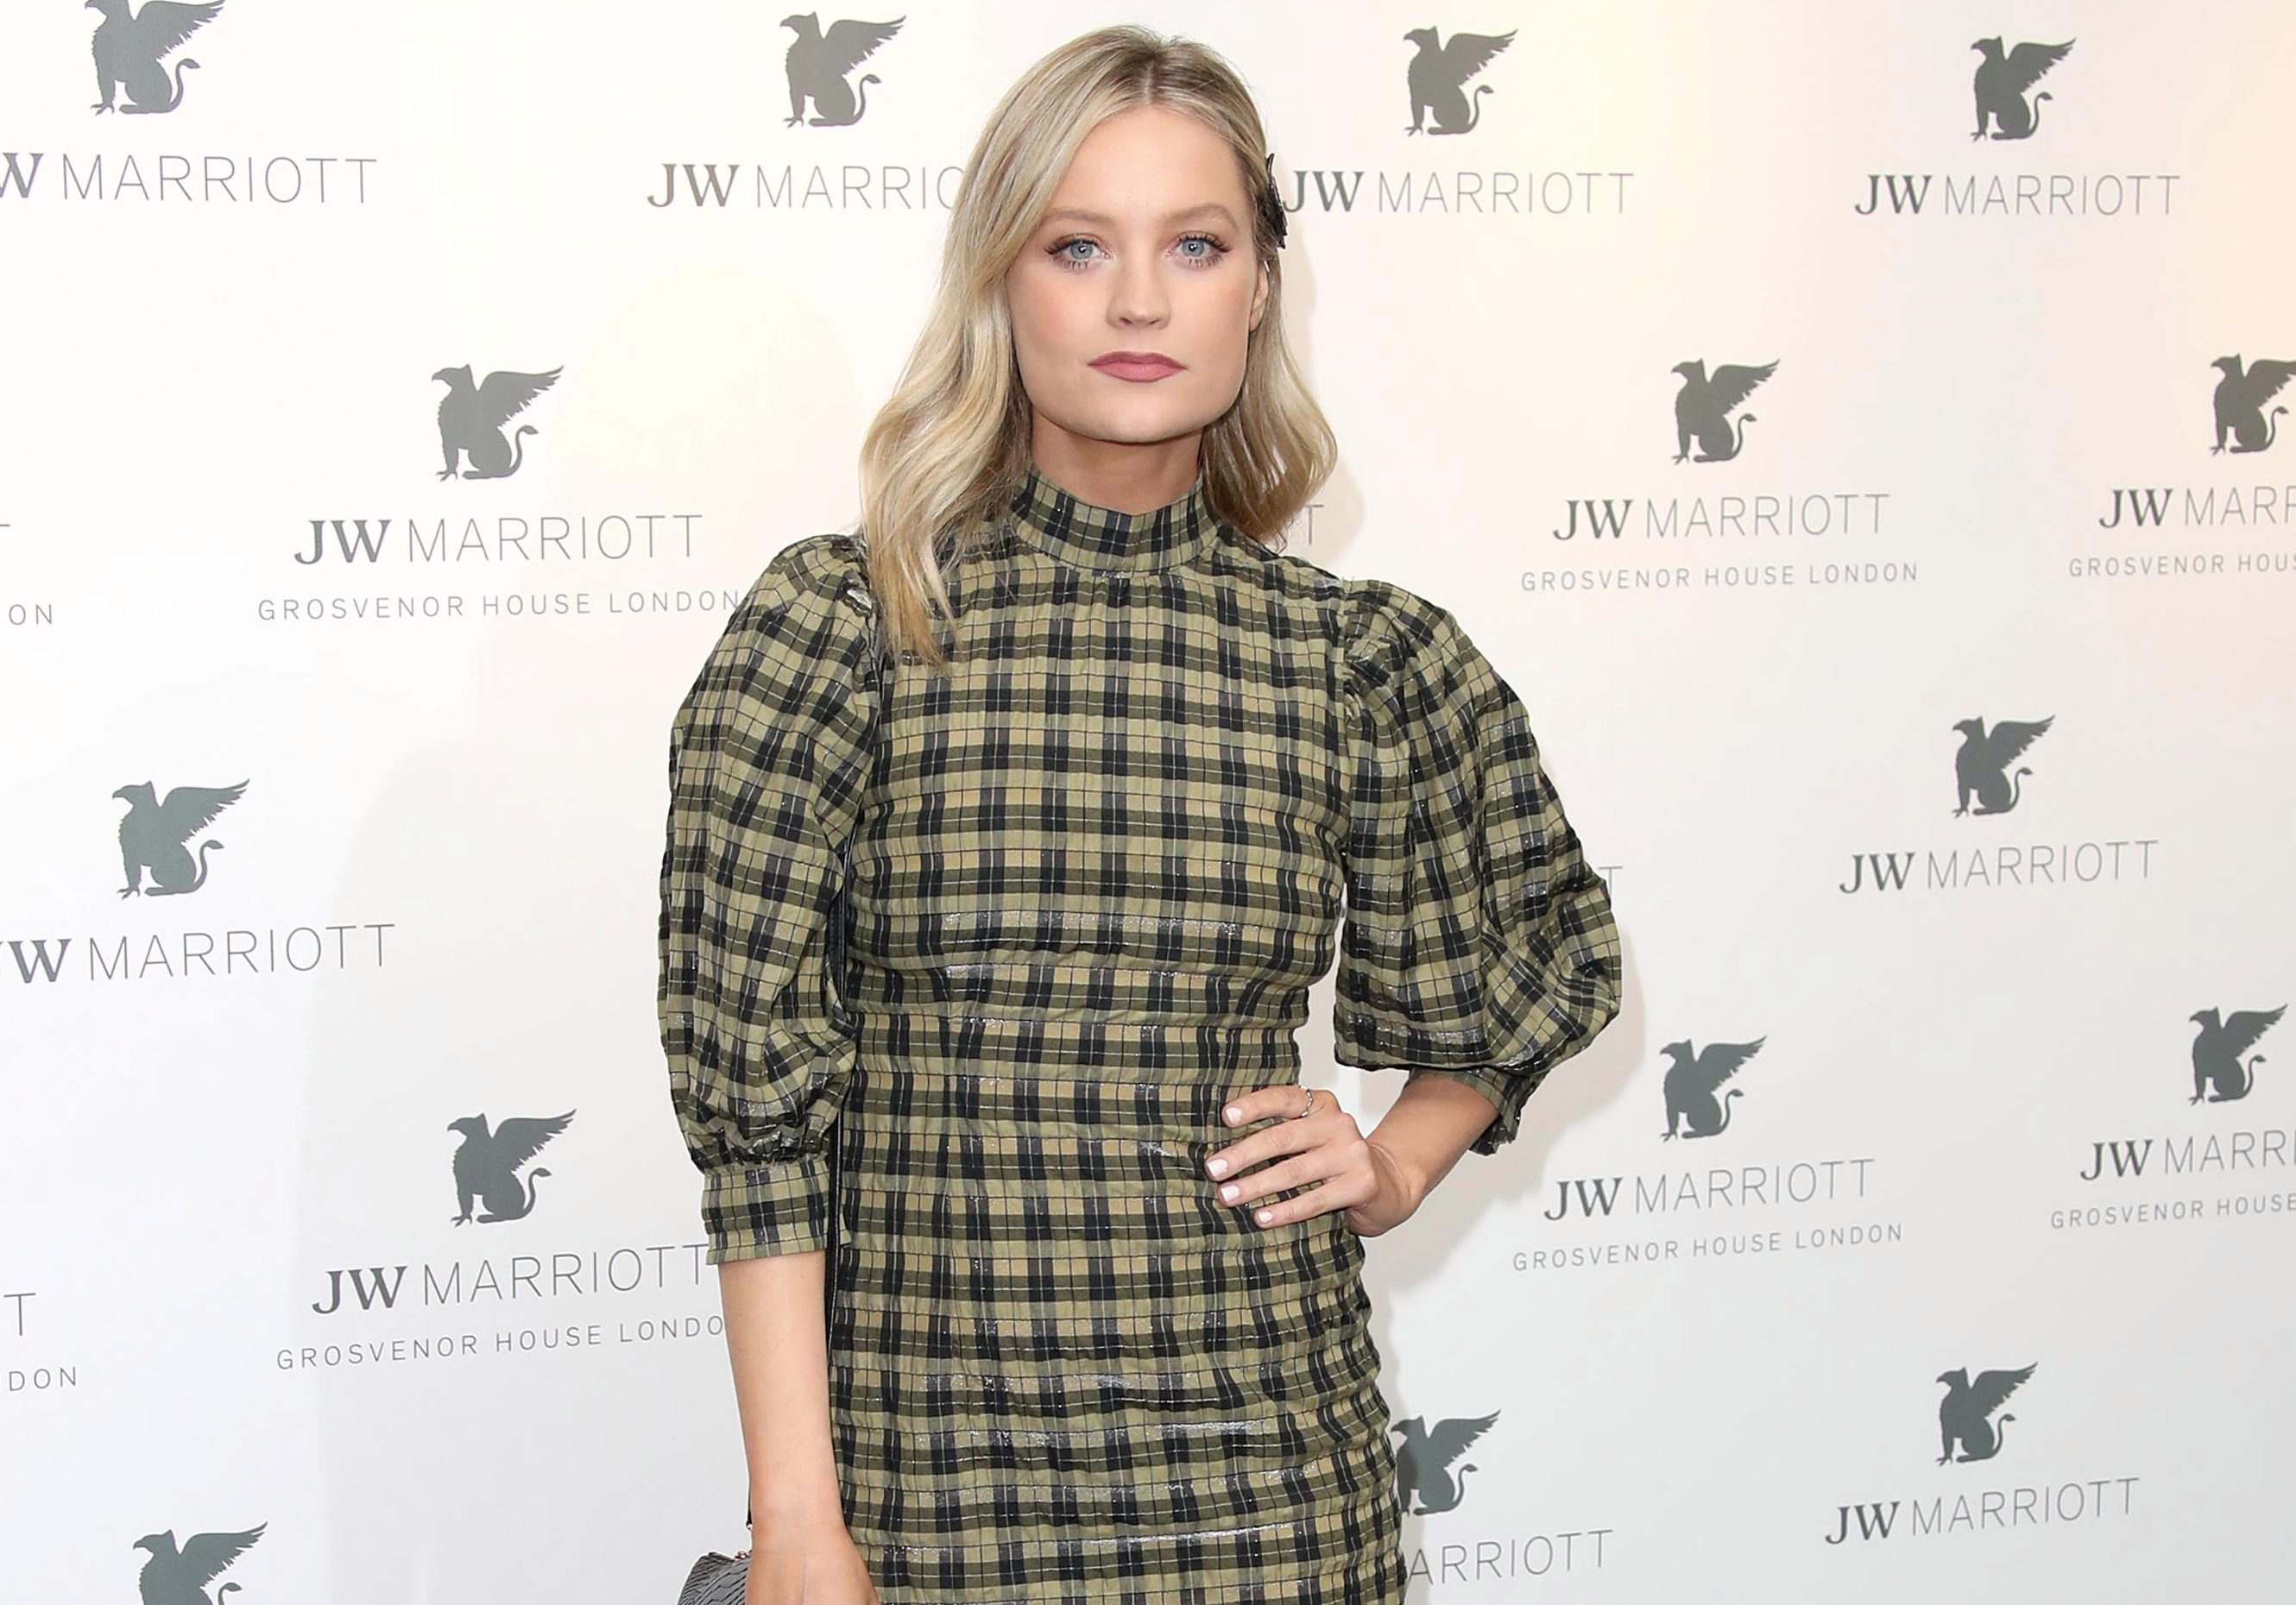 Laura Whitmore on plans to start singing career as she fronts YouTube music series